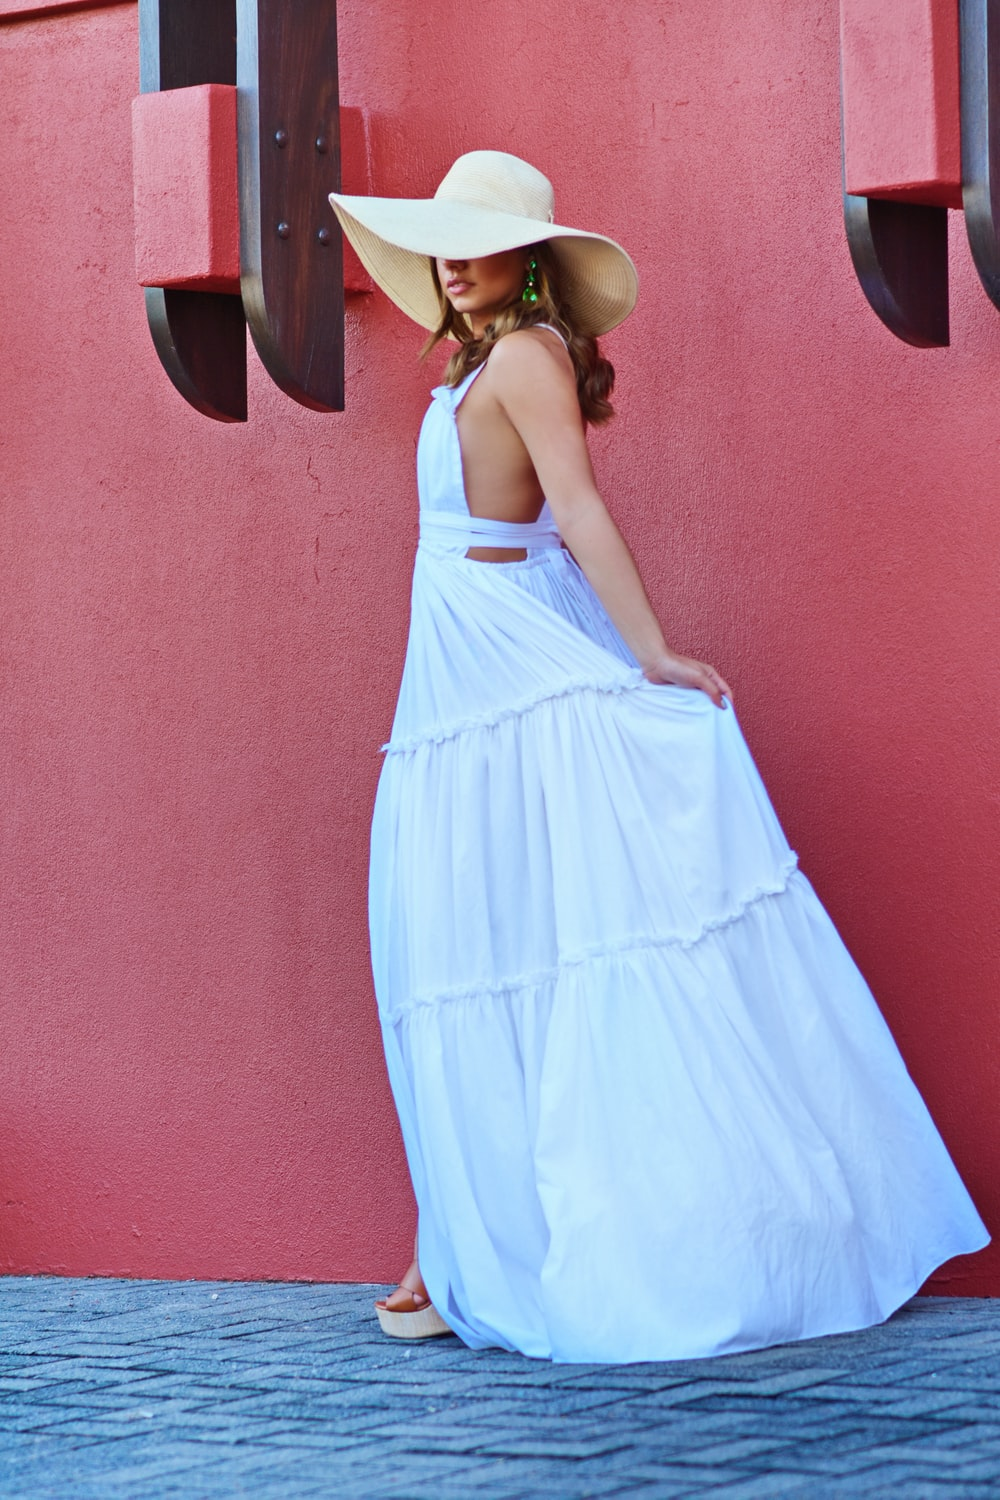 woman in blue and white sleeveless dress wearing yellow sun hat